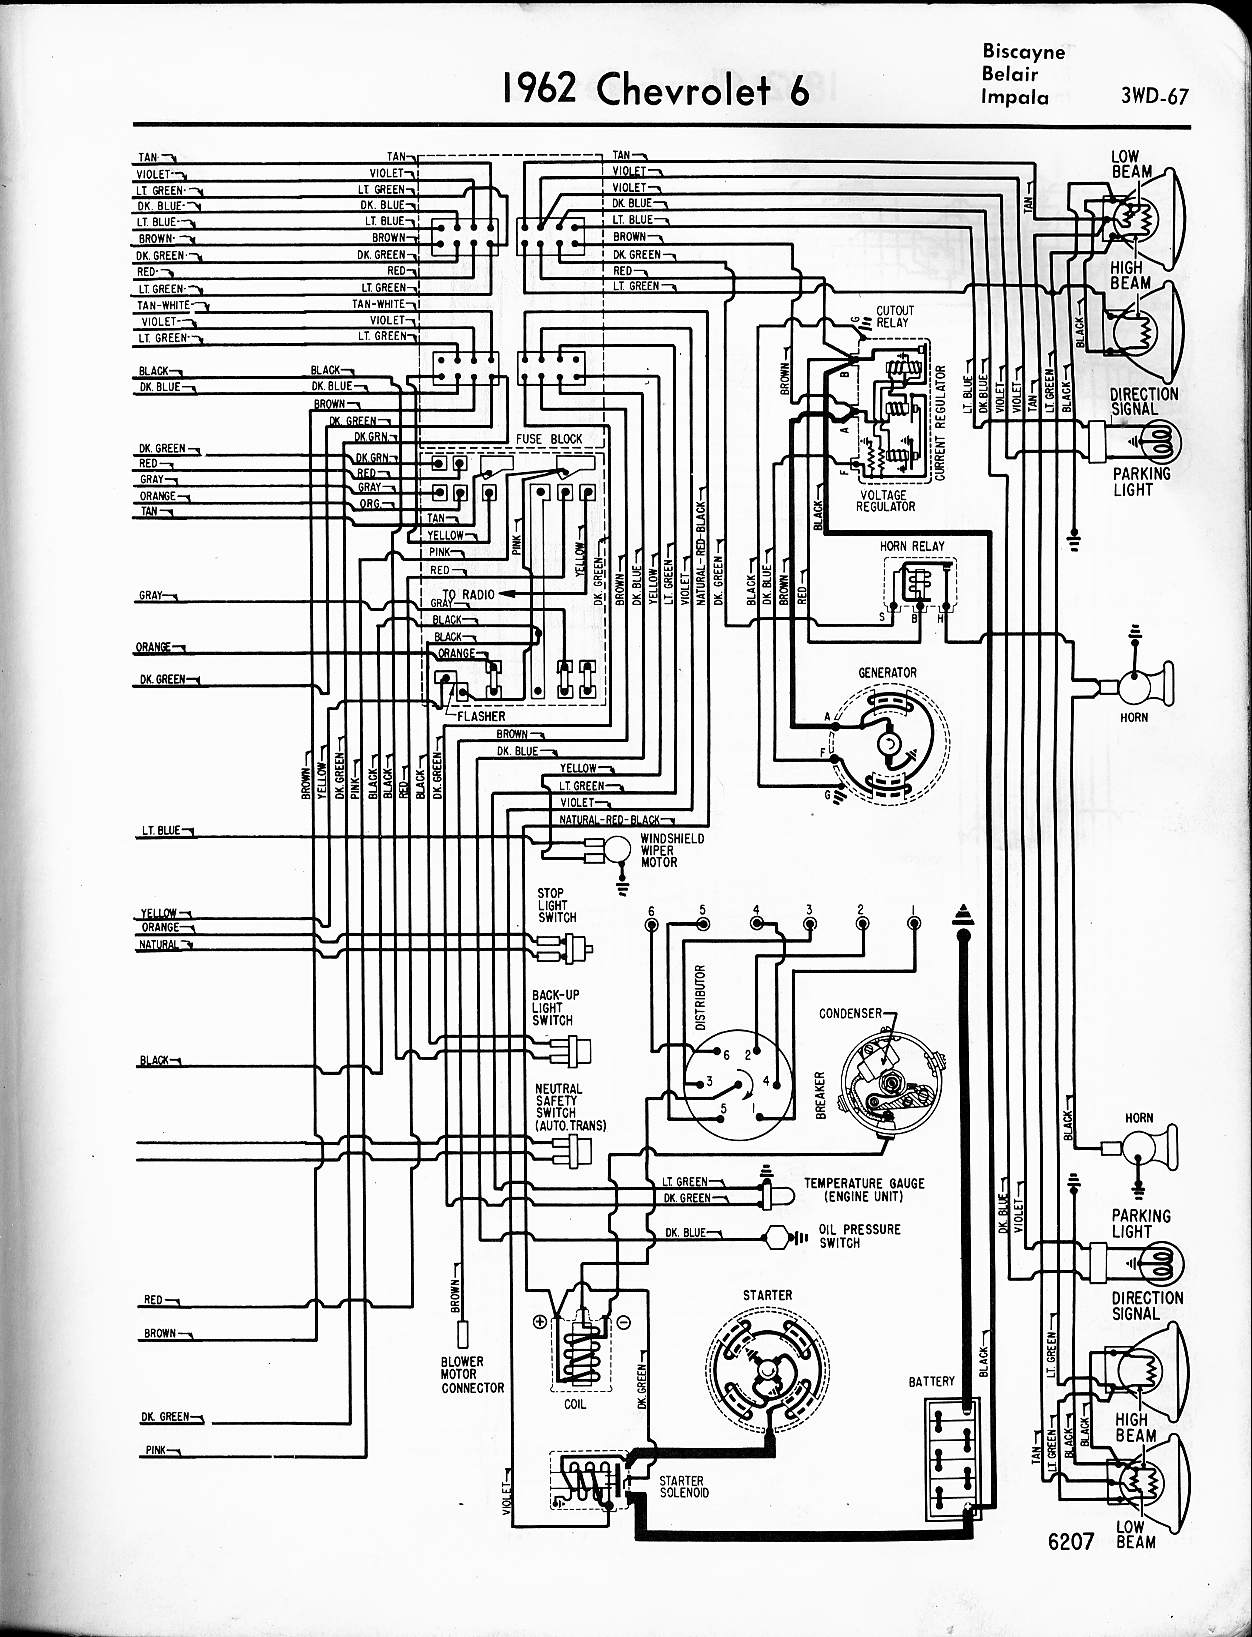 Luxury Gm Obd1 Wiring Diagram Frieze - Wiring Diagram Ideas ...